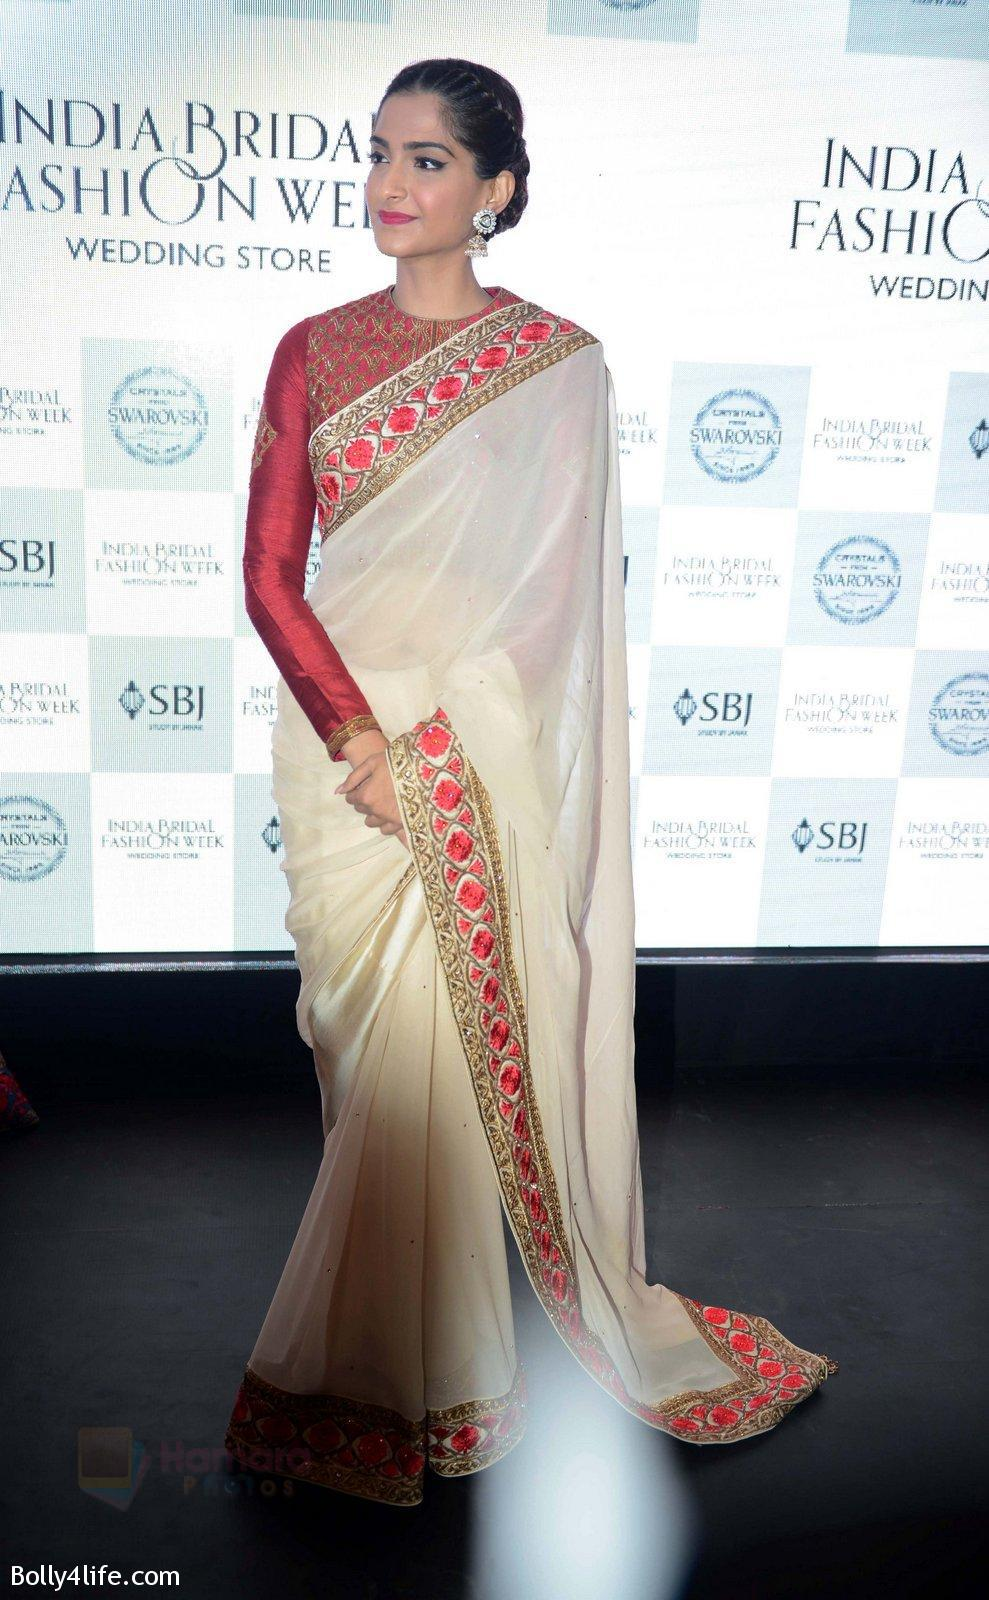 Sonam-Kapoor-during-the-launch-of-the-first-Indian-Bridal-Fashion-Week-Wedding-Store-in-New-Delhi-on-9th-Sept-2016-31.jpg